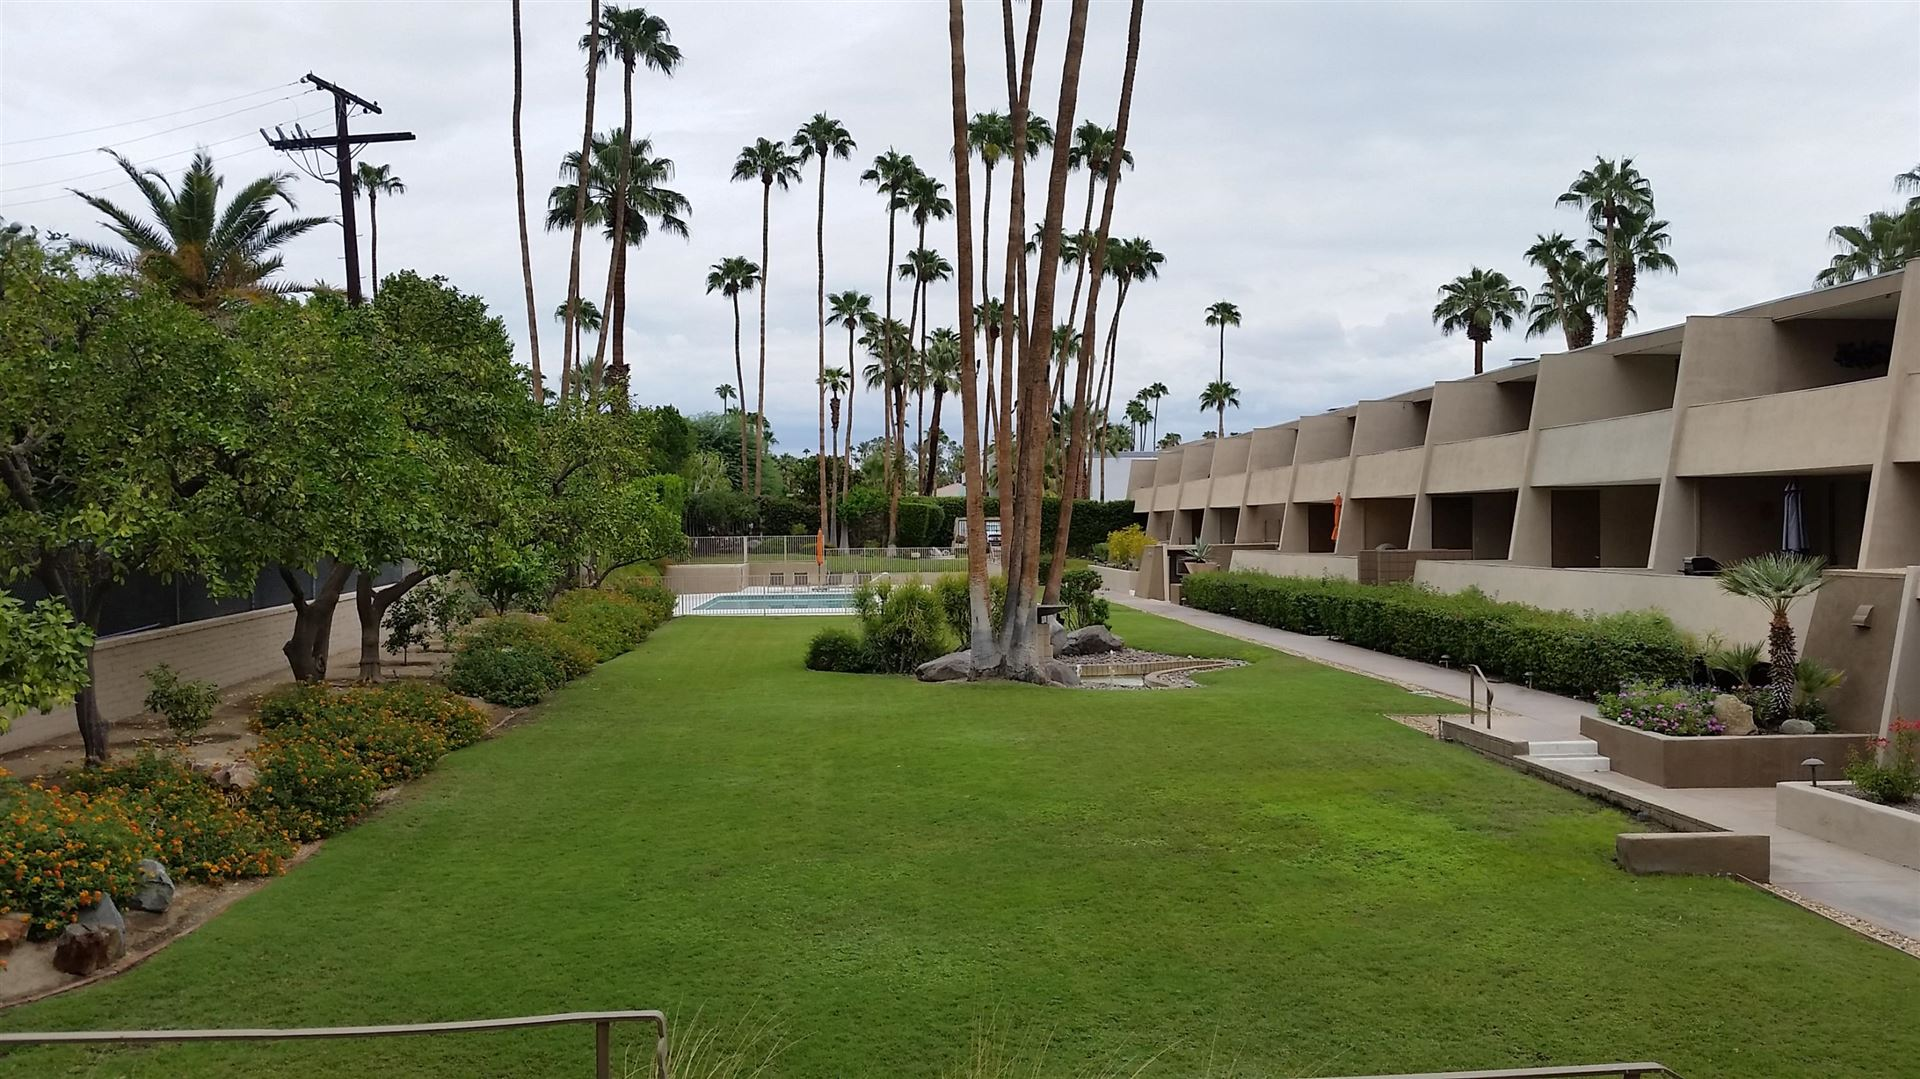 197 W Via Lola #8, Palm Springs, CA 92262 - #: 219038381